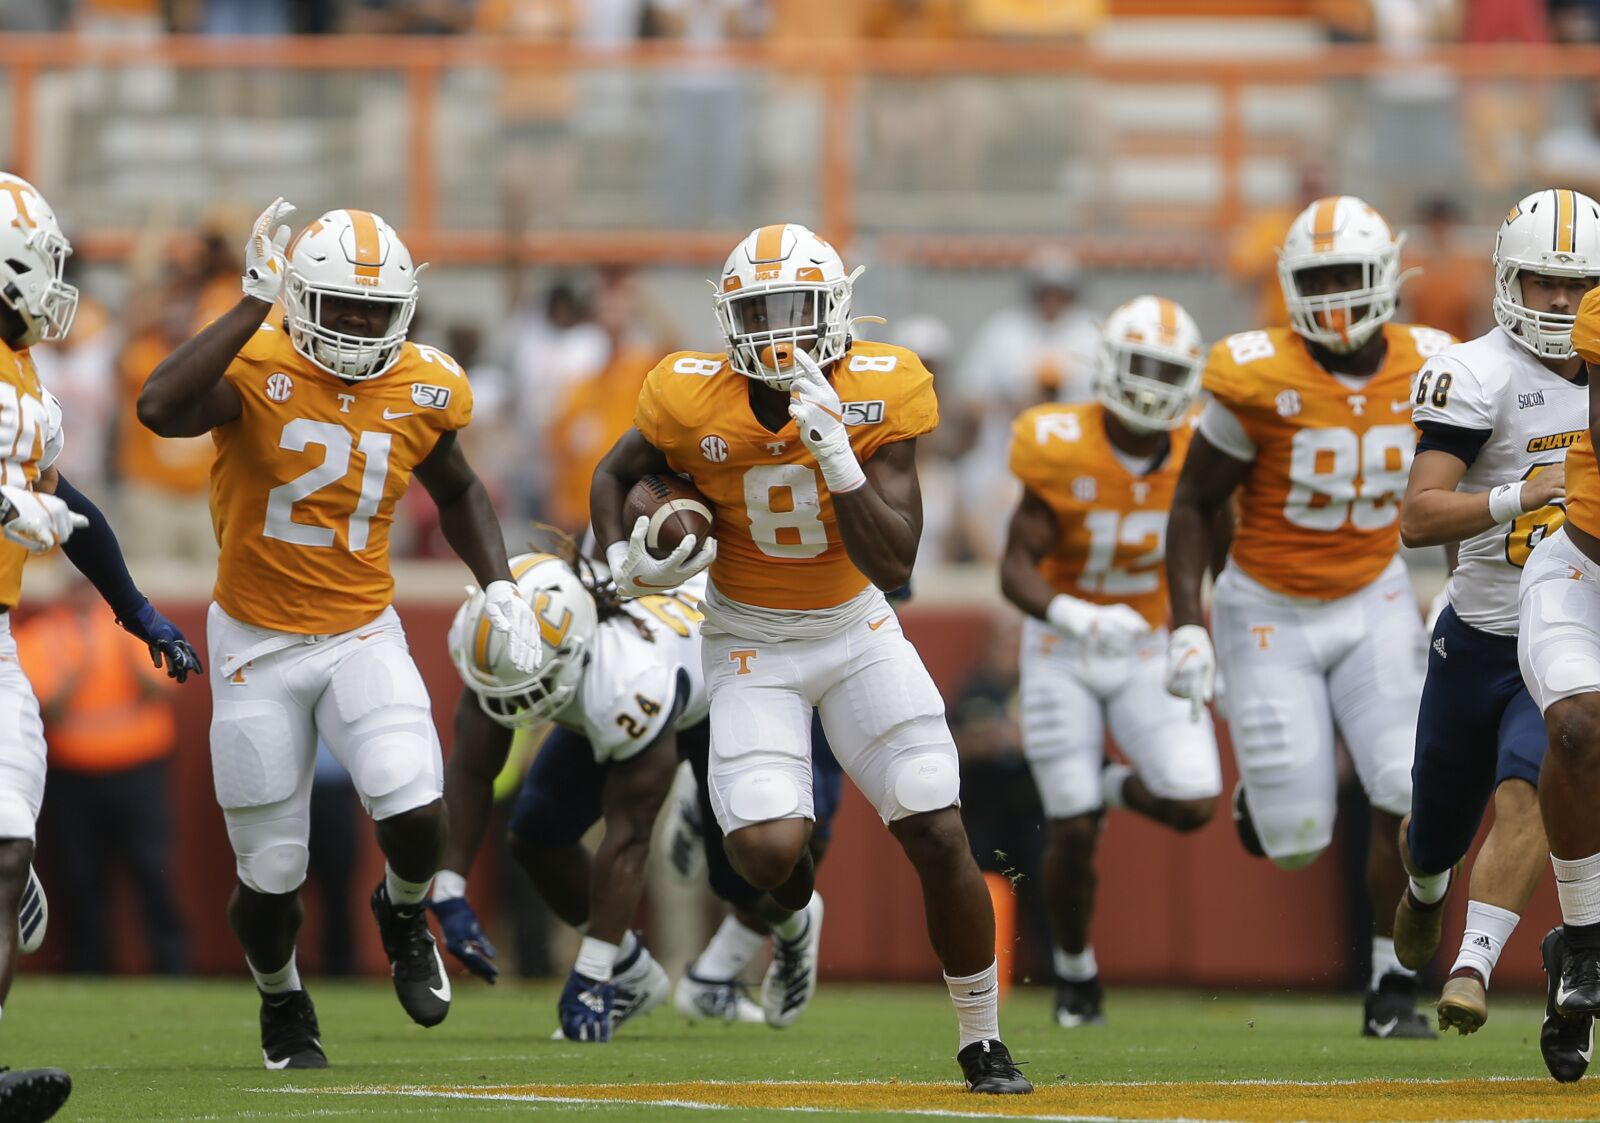 Florida football: Know your enemy – Tennessee Volunteers